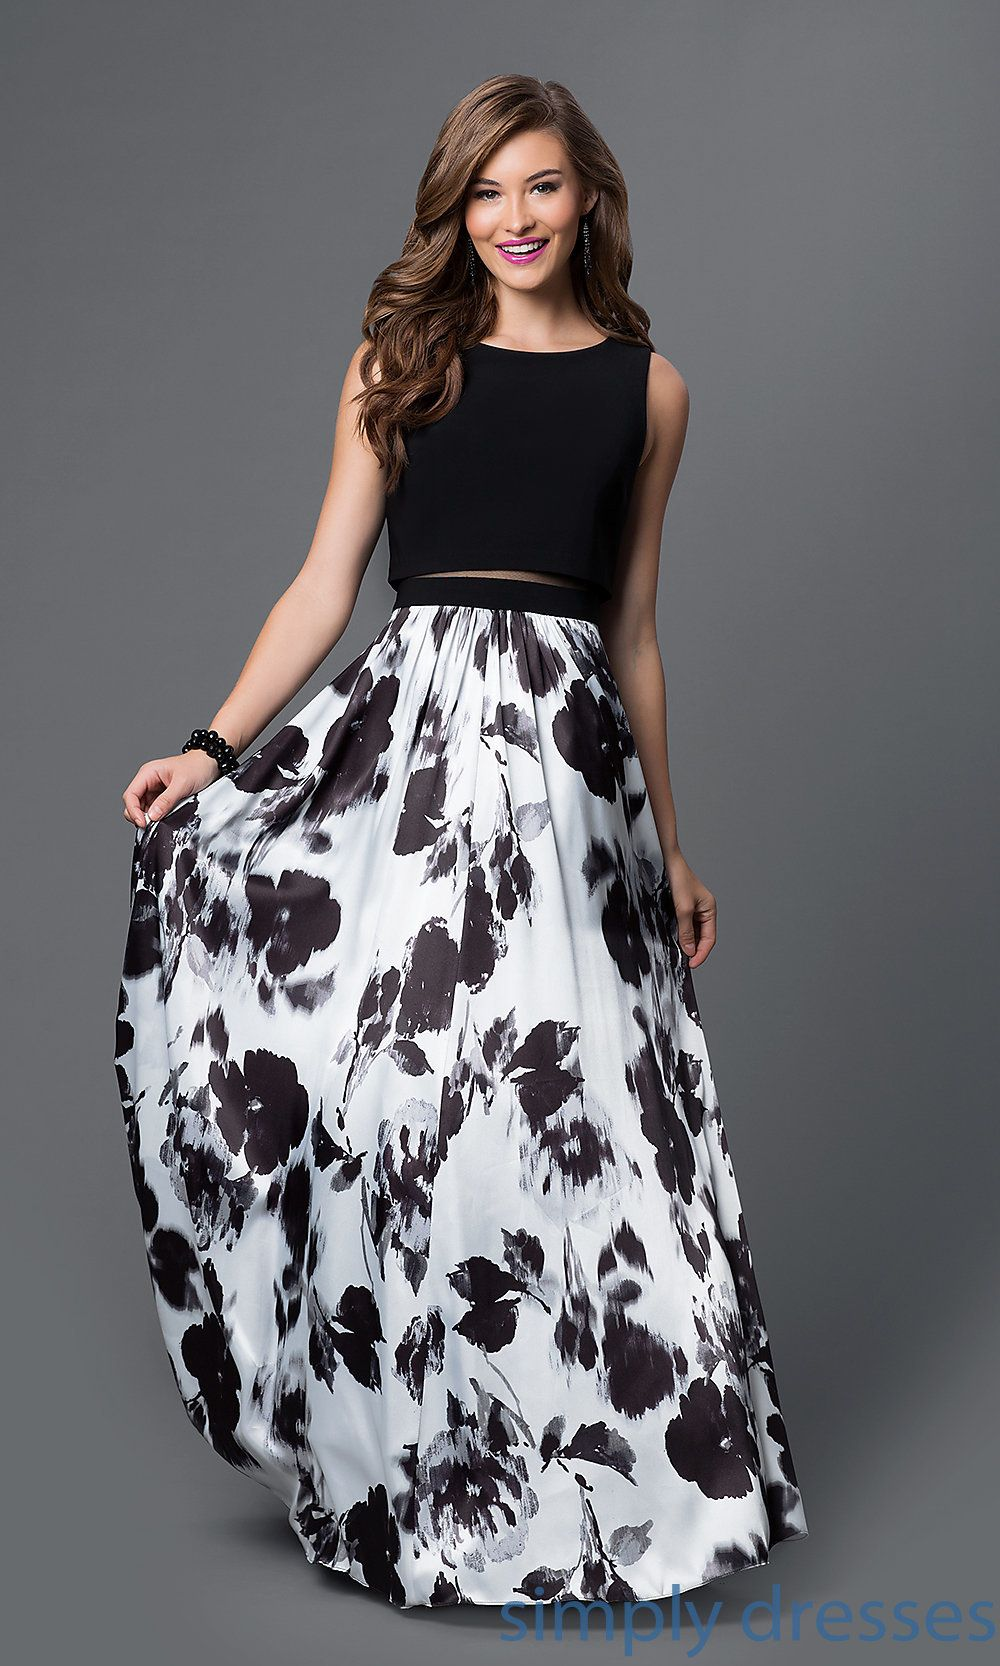 Mock Two-Piece Floral-Print Black and White Dress | Formal ...